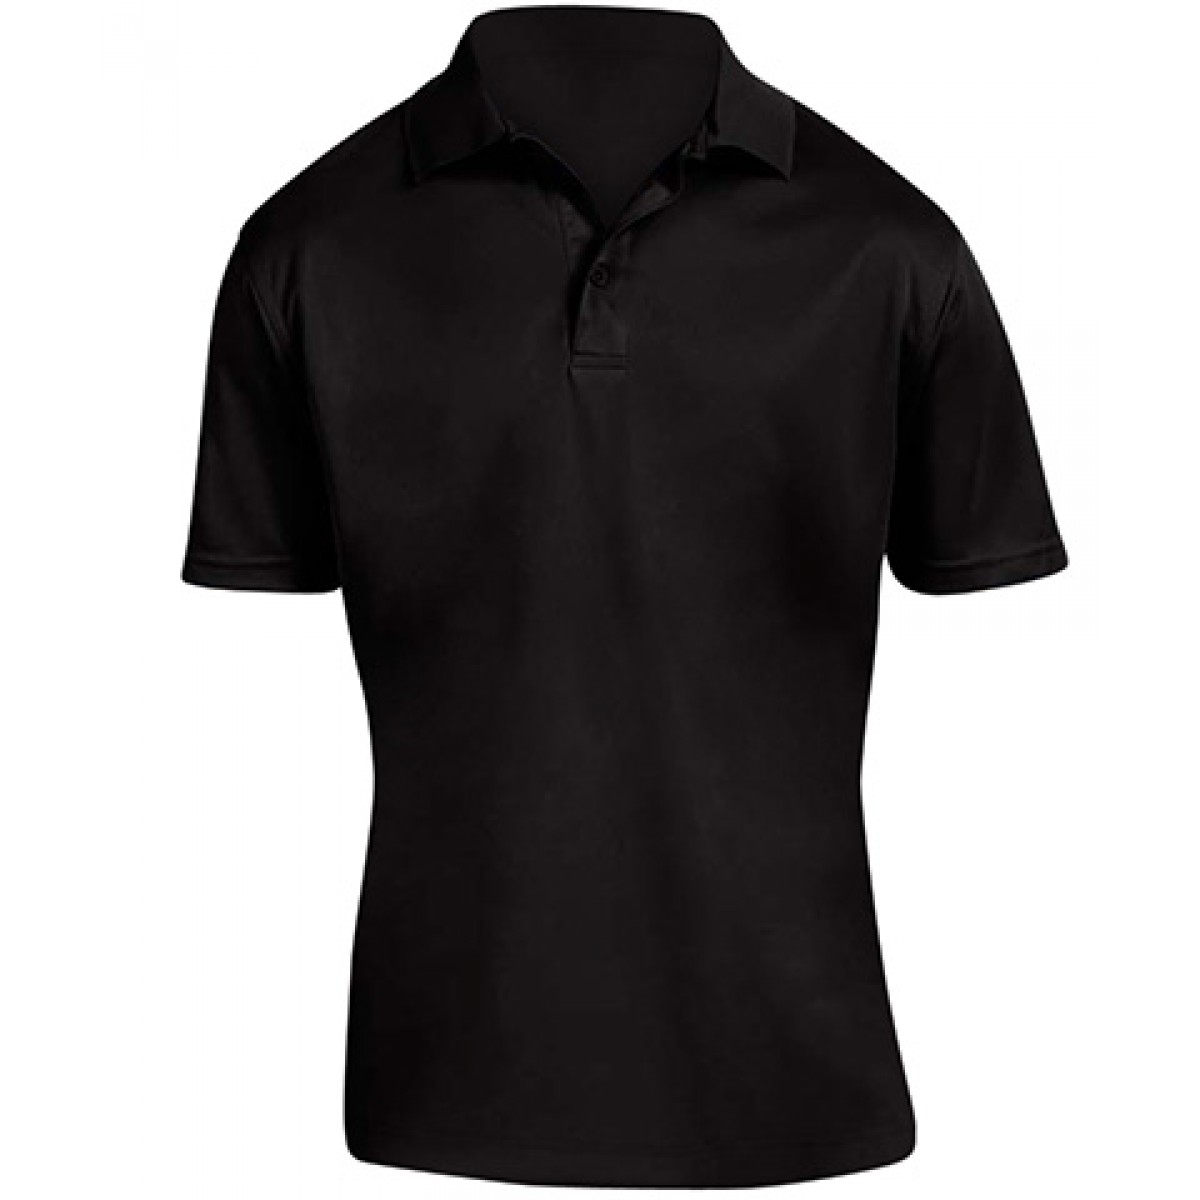 Men's 4 oz. Polytech Polo-Black-M